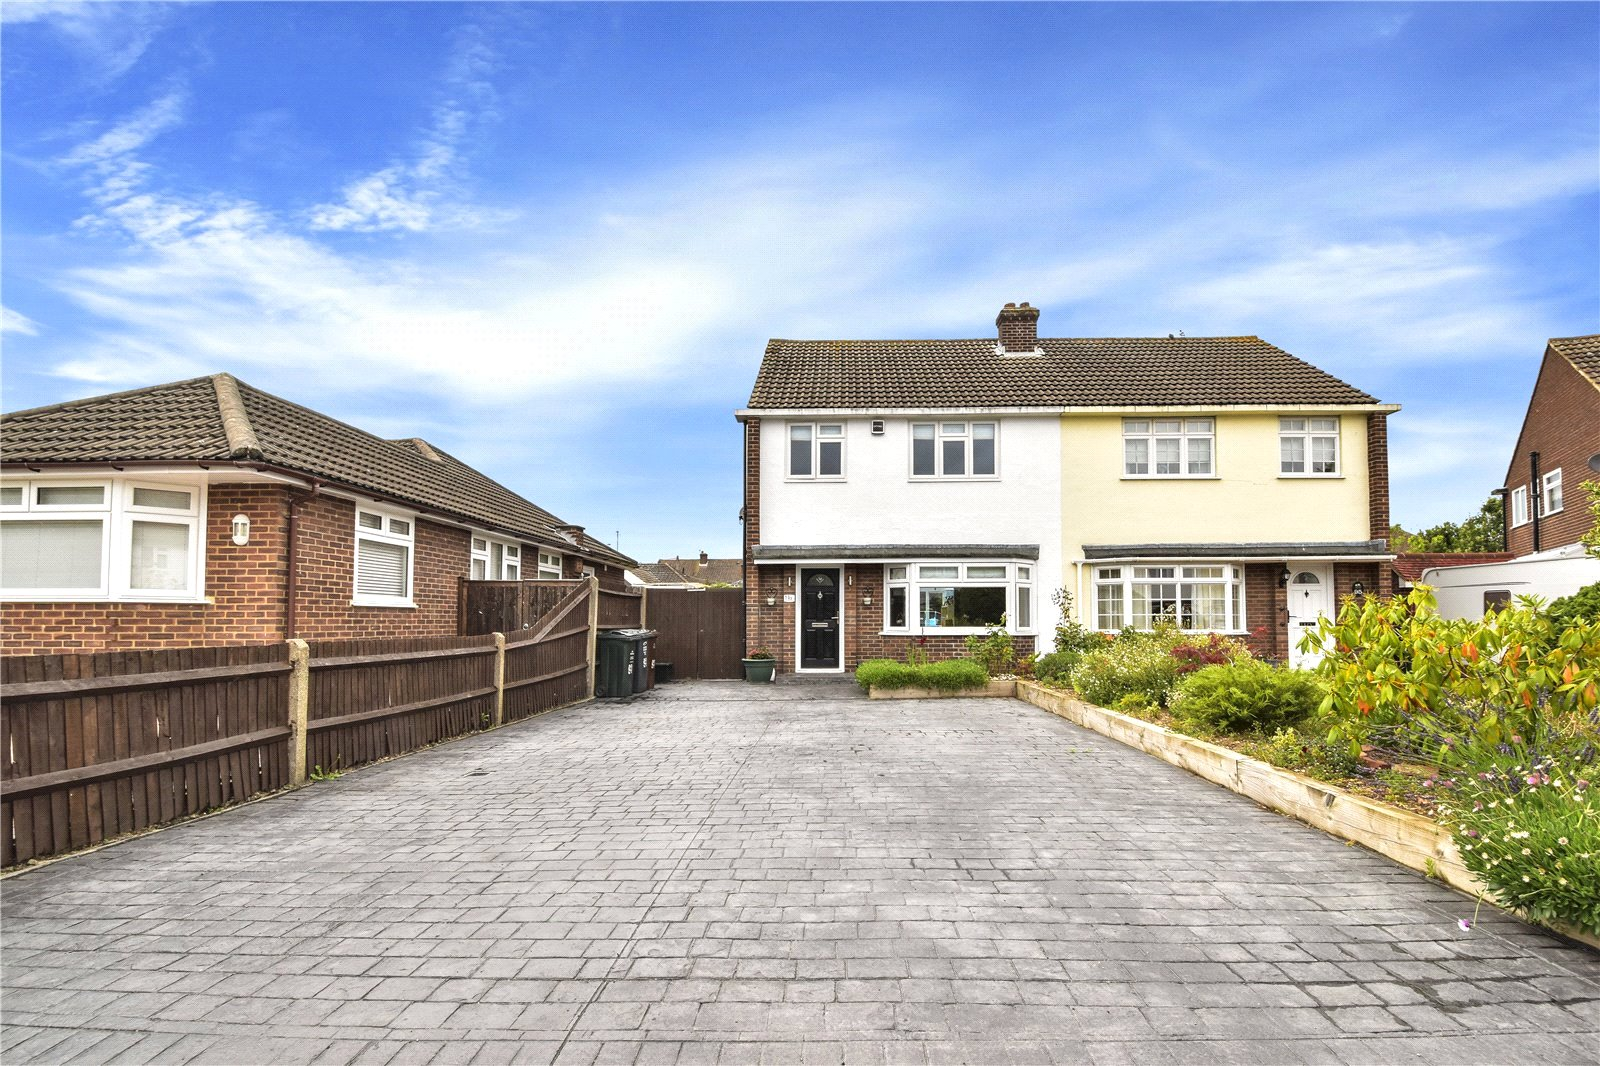 Tredegar Road, Wilmington, Kent, DA2